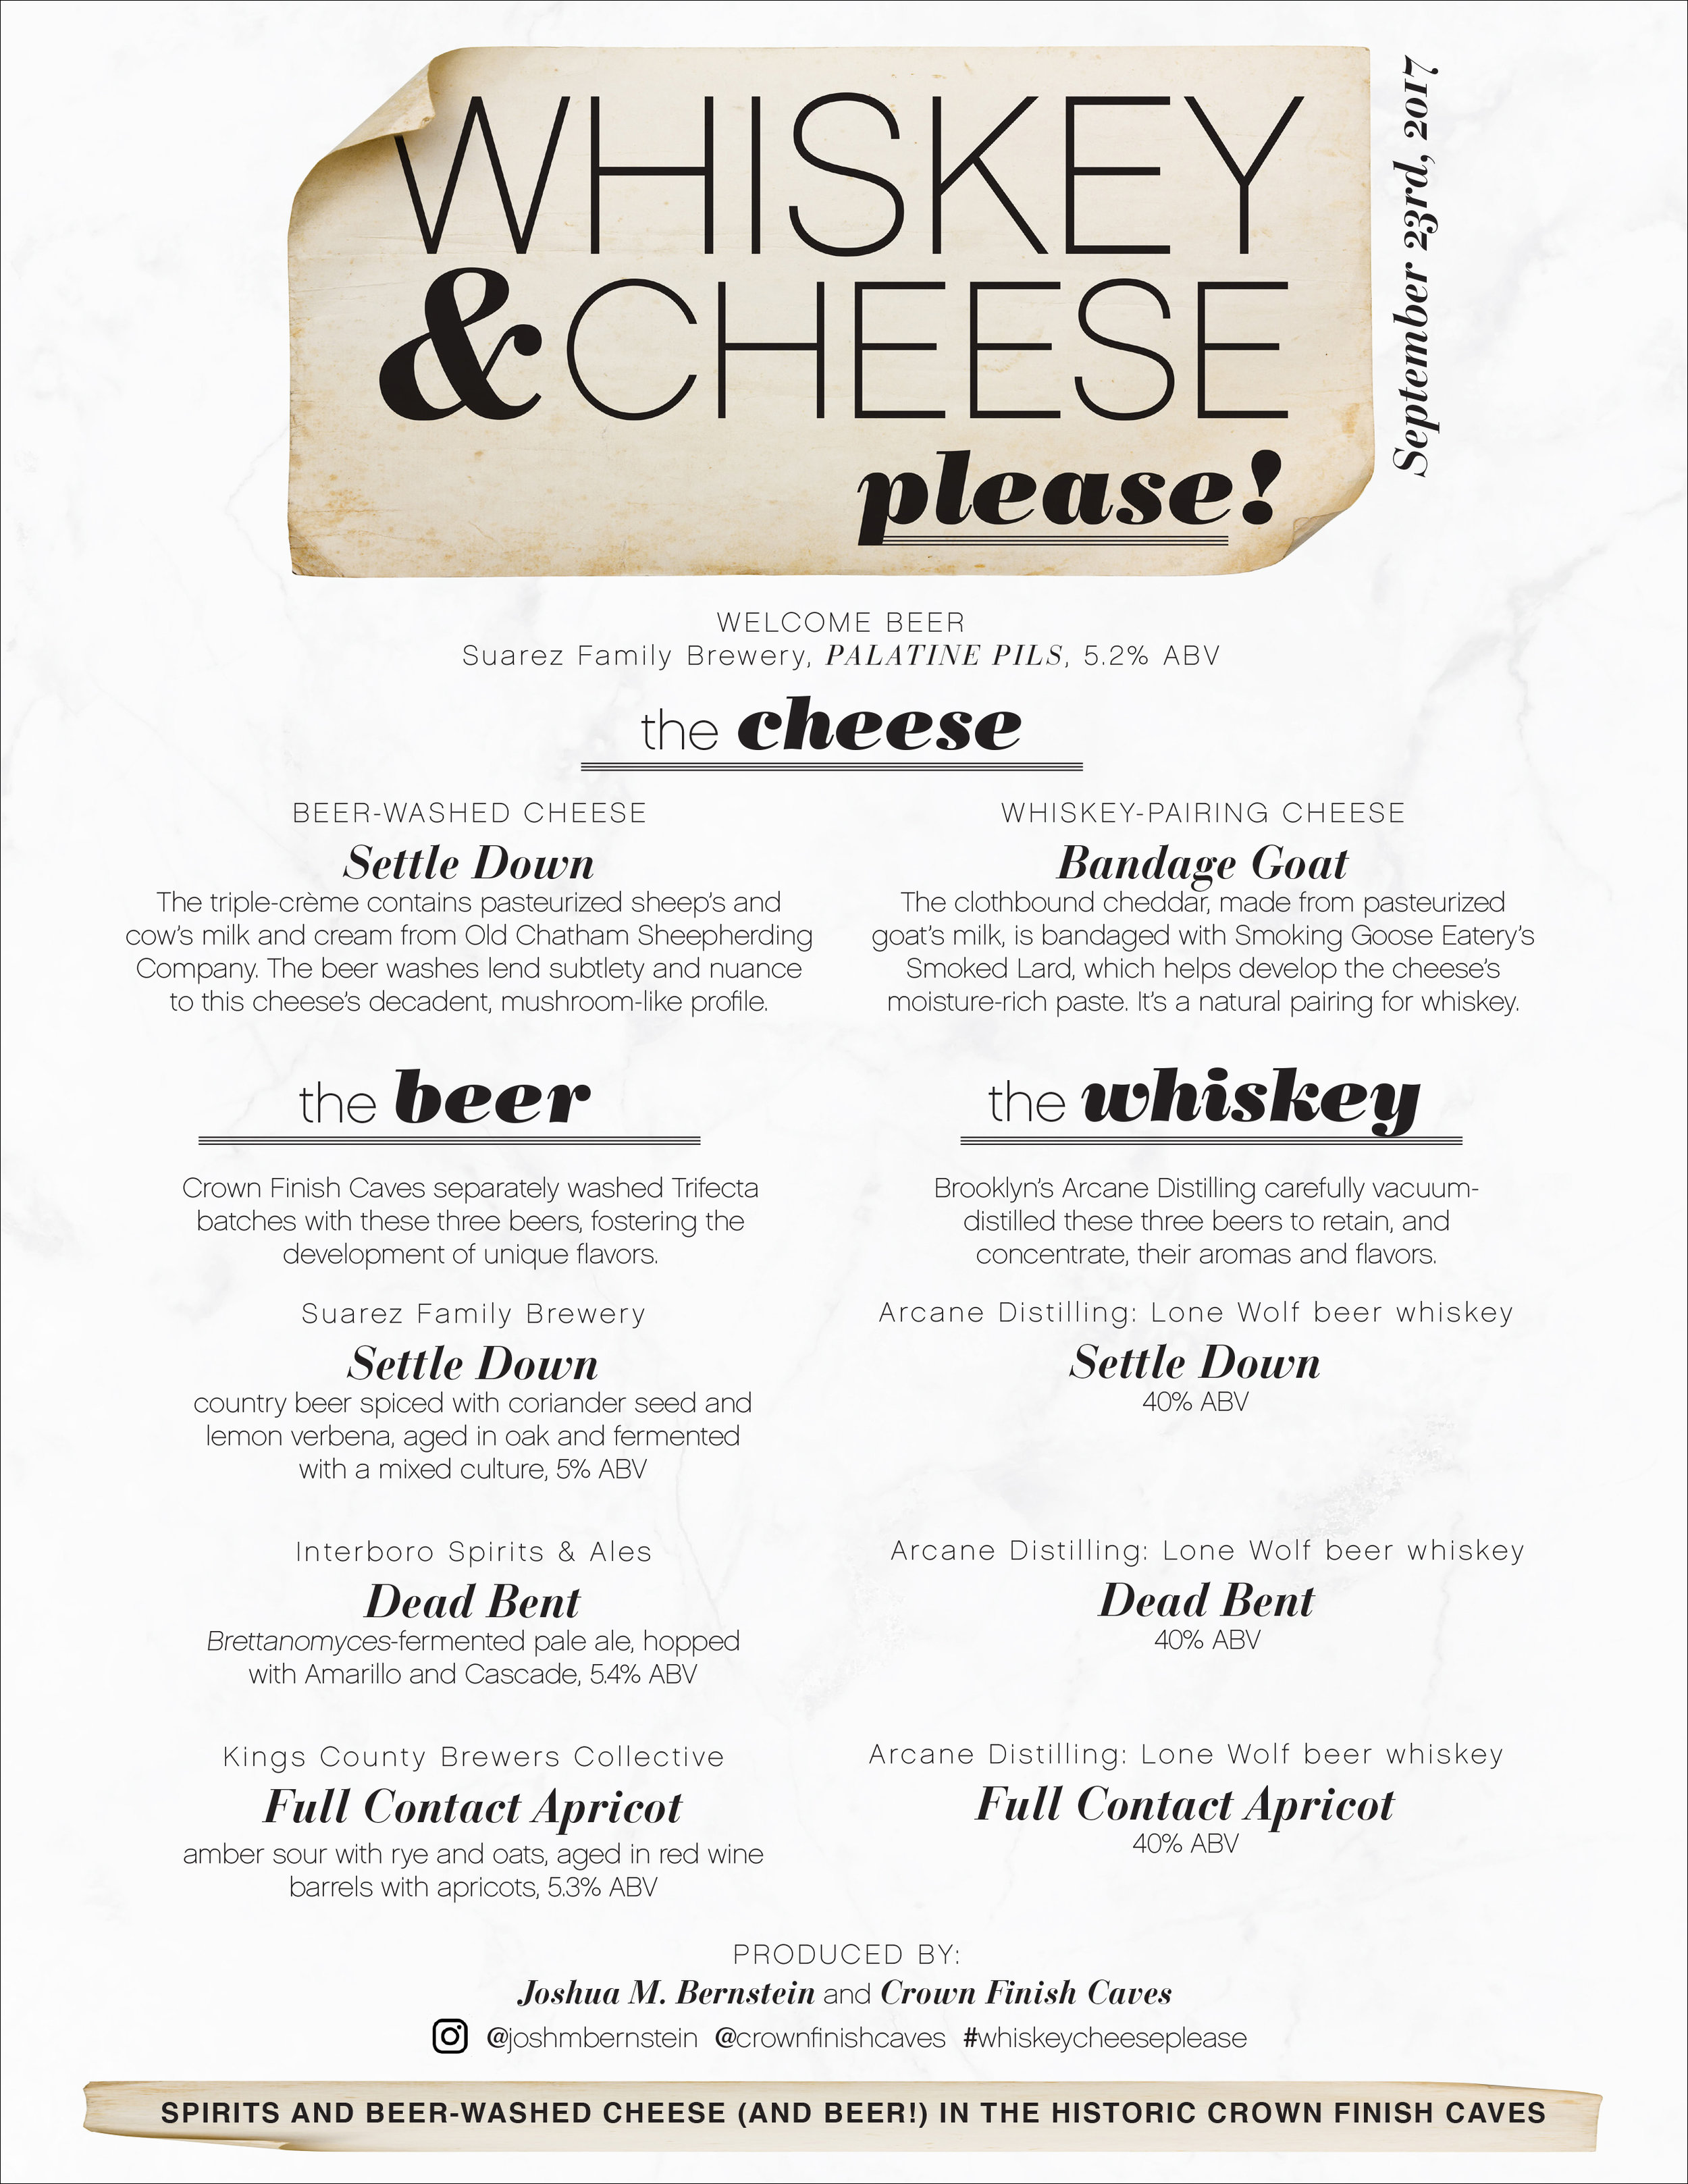 Whiskey & Cheese, Please - Event Logo and Menu Design